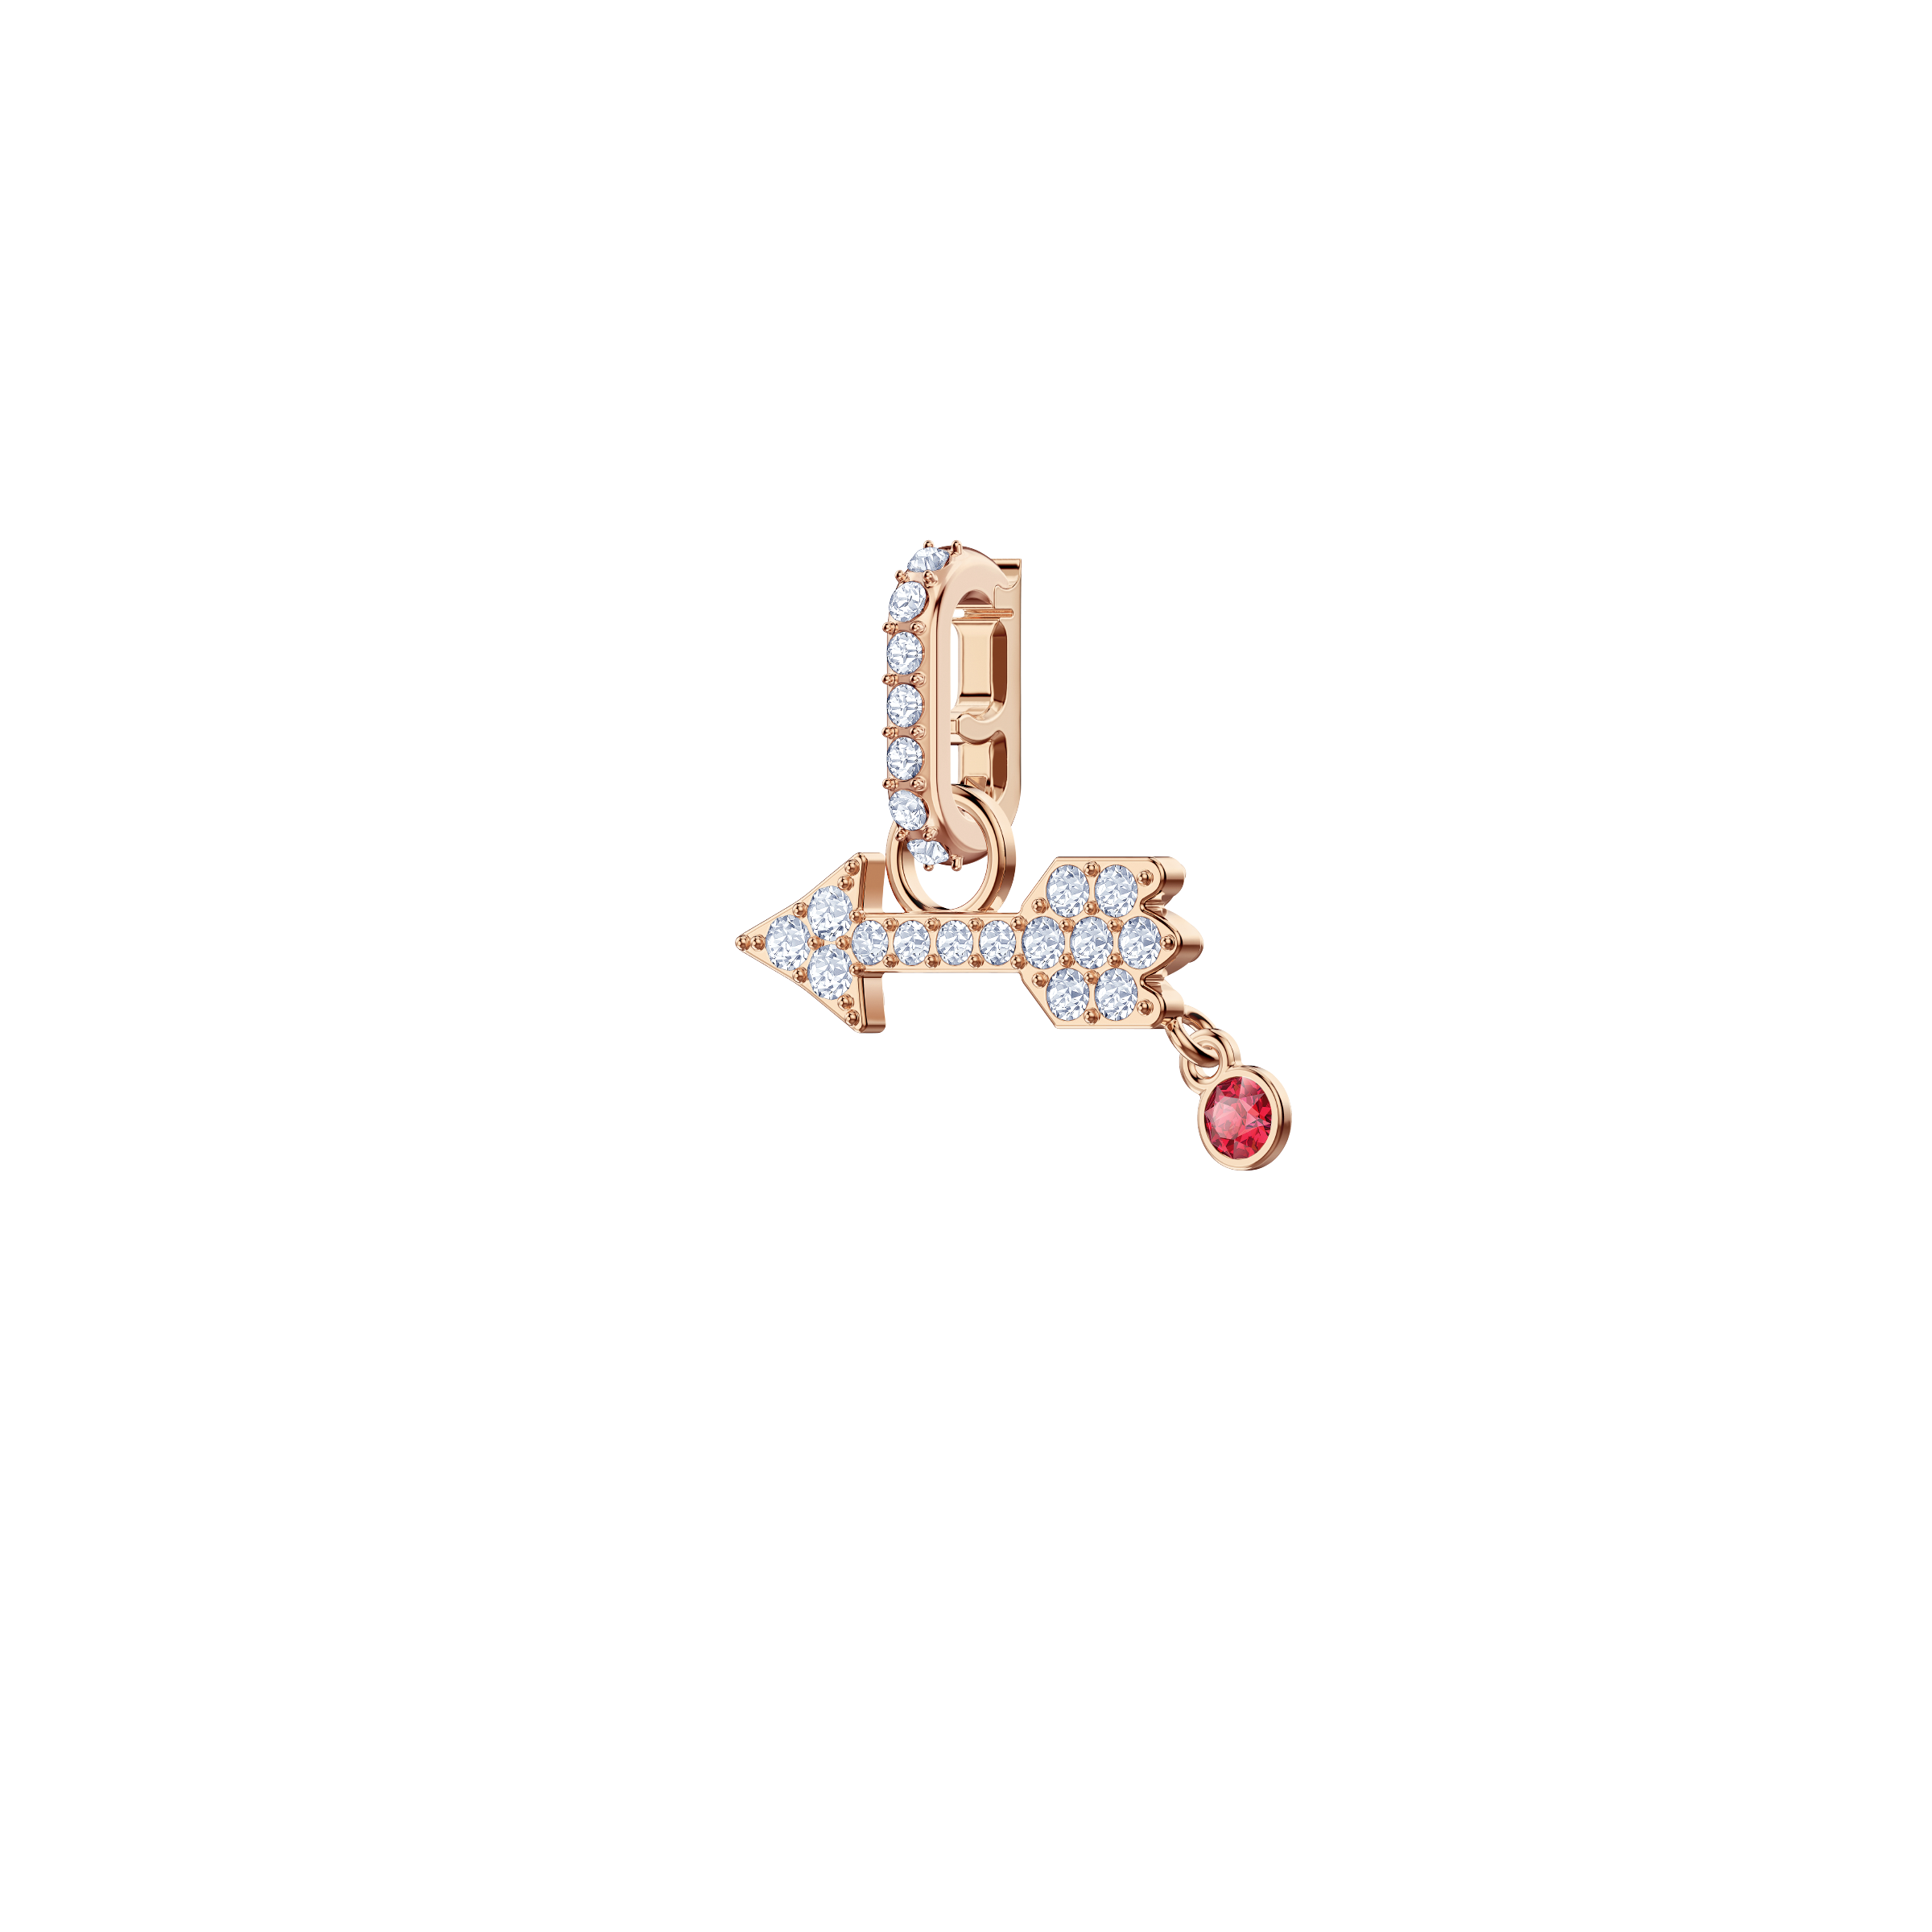 Swarovski Remix Collection Charm Arrow, White, Rose gold plating